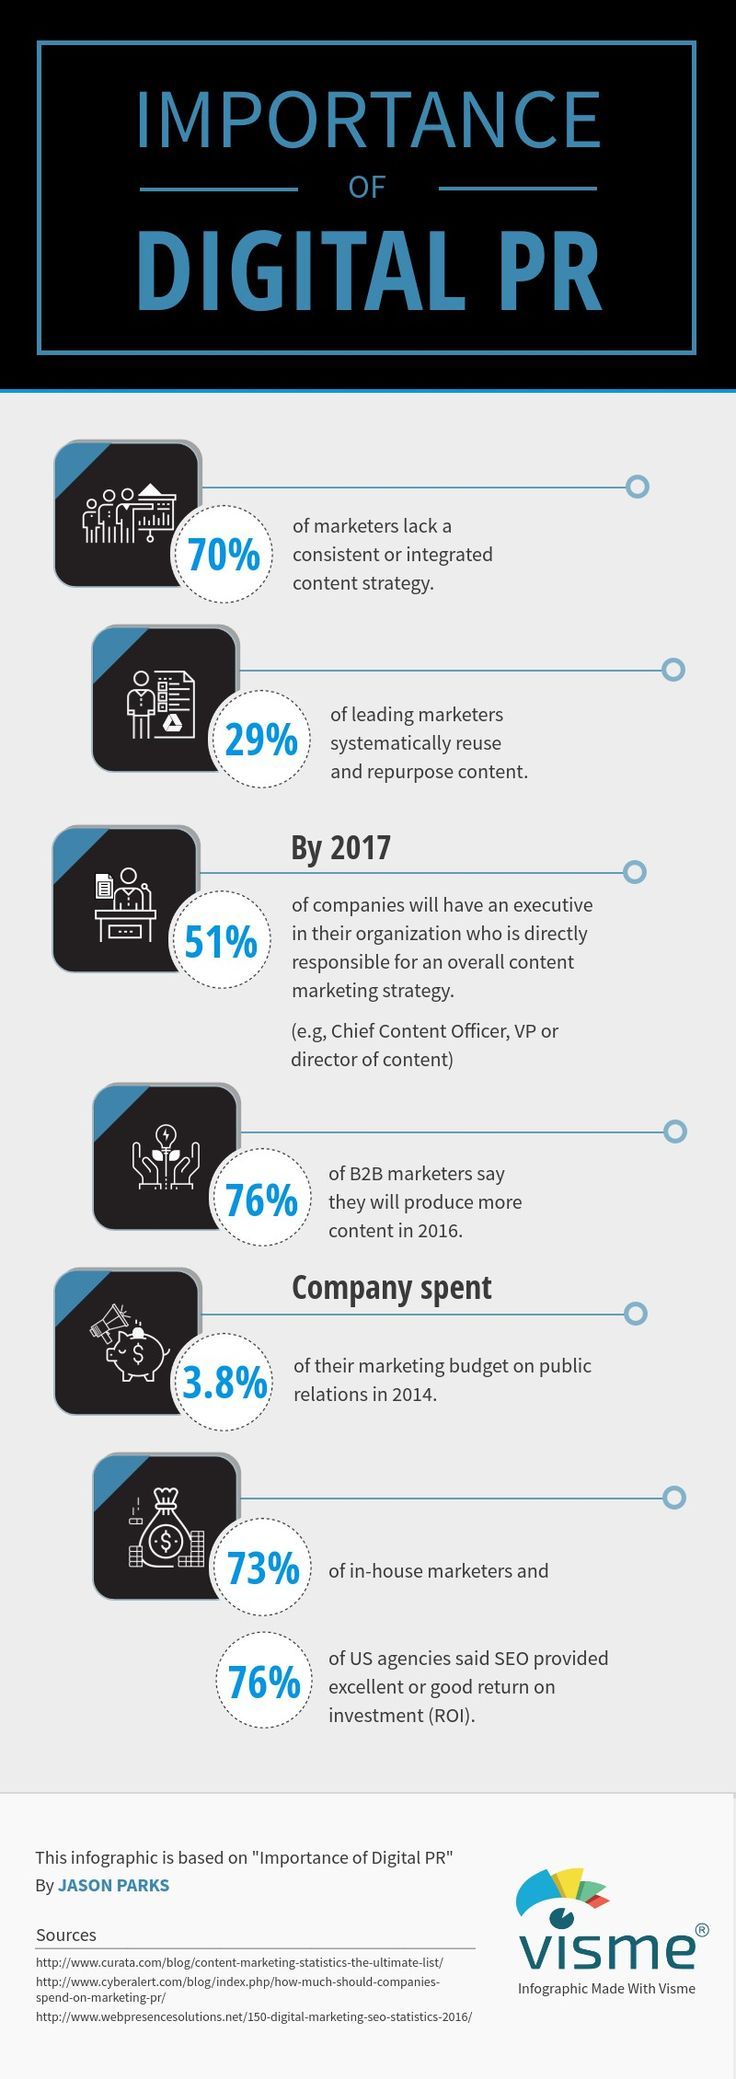 INFOGRAPHIC: The Importance of Digital PR